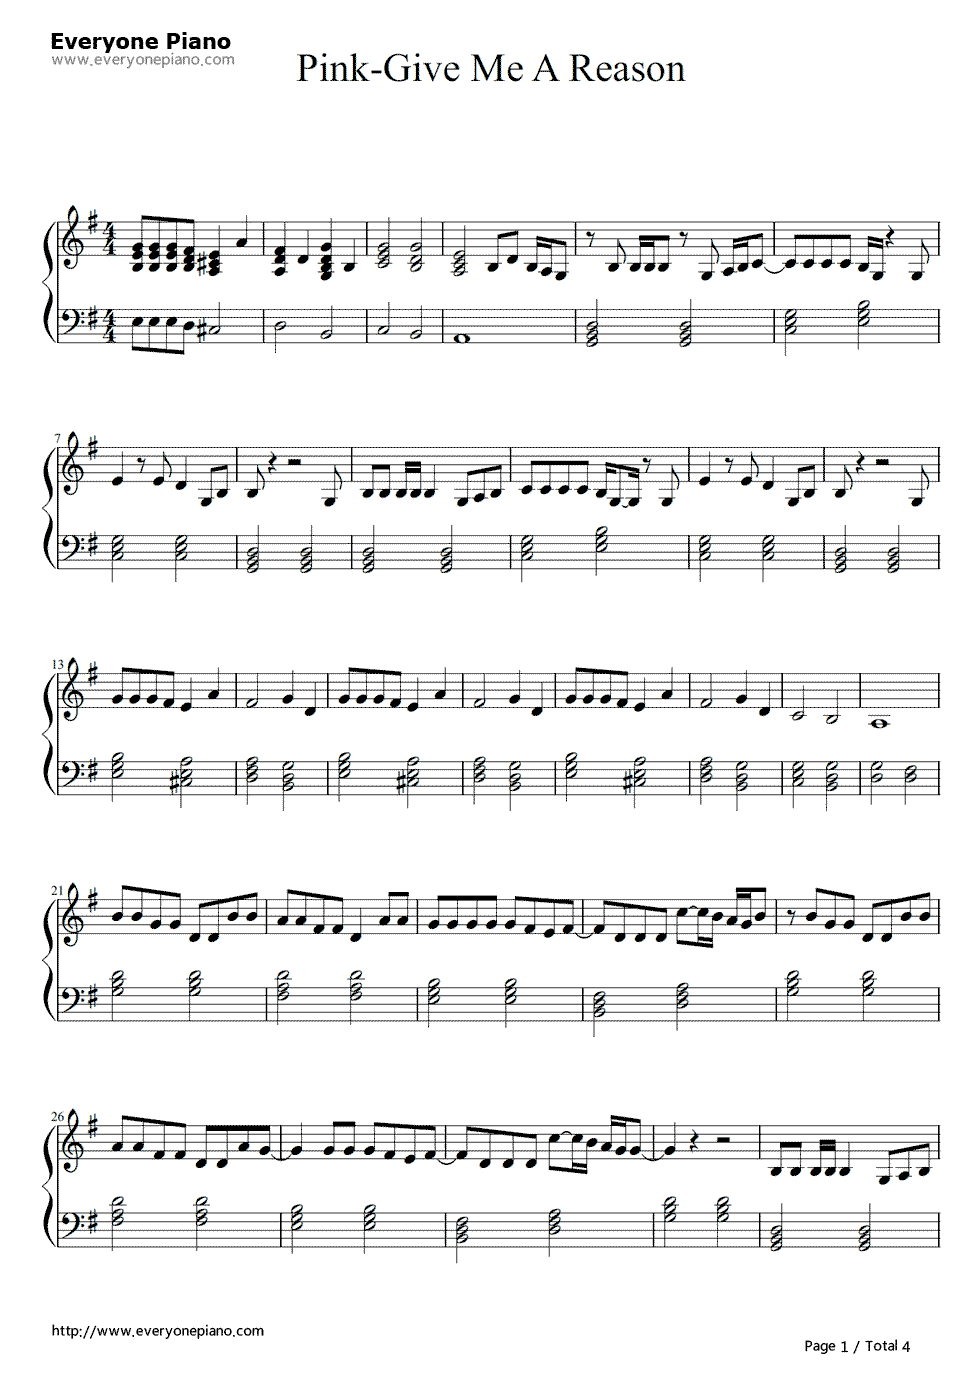 Just give me a reason pnk stave preview 1 piano music learn to play piano a complete beginners guidero 7 steps to learn how to play piano step getting familiar with your notes hexwebz Image collections